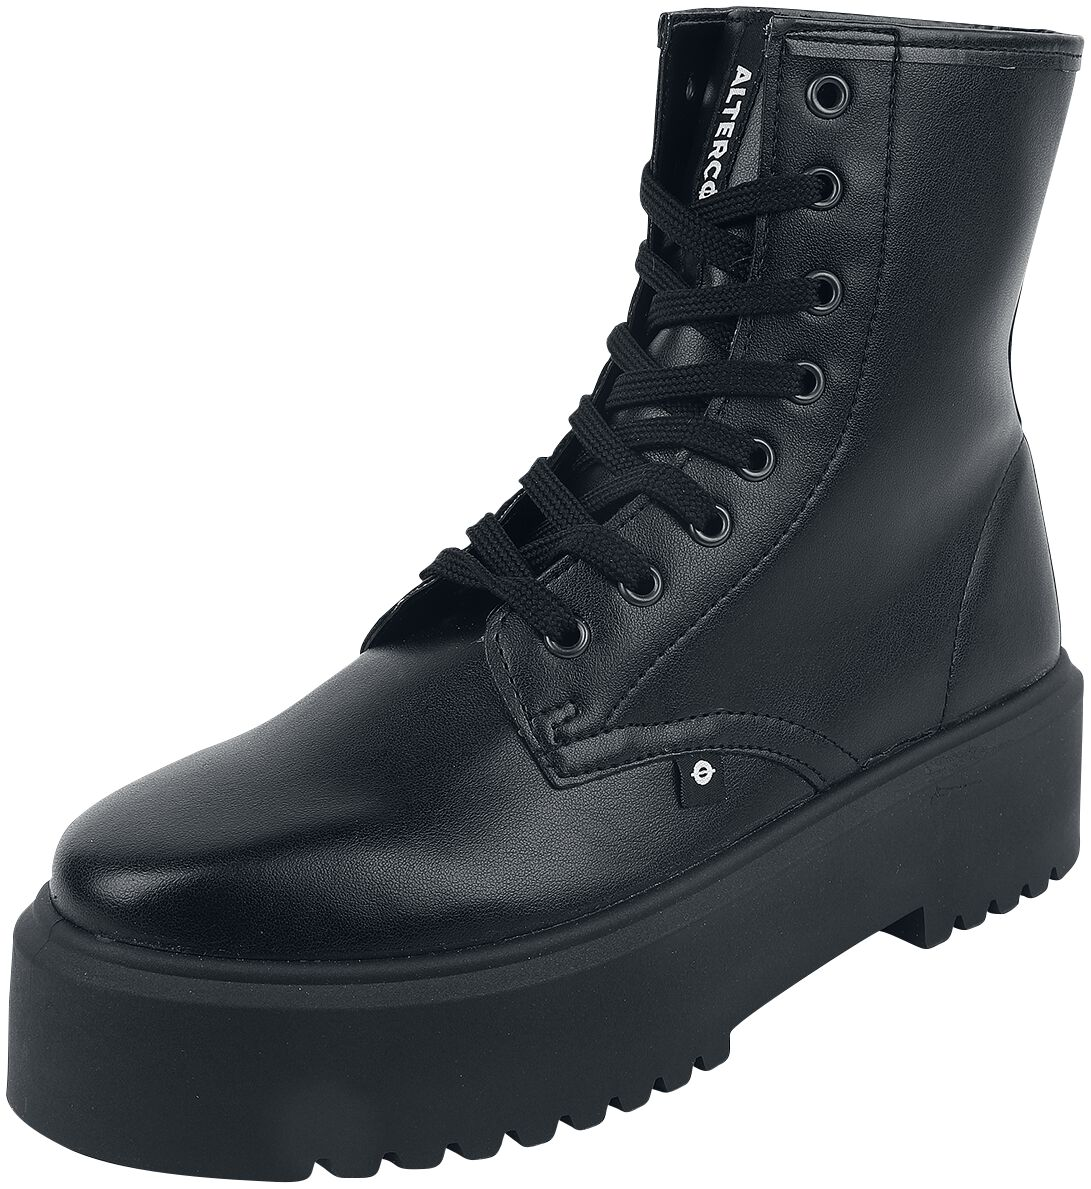 Image of Altercore Katie Boots schwarz